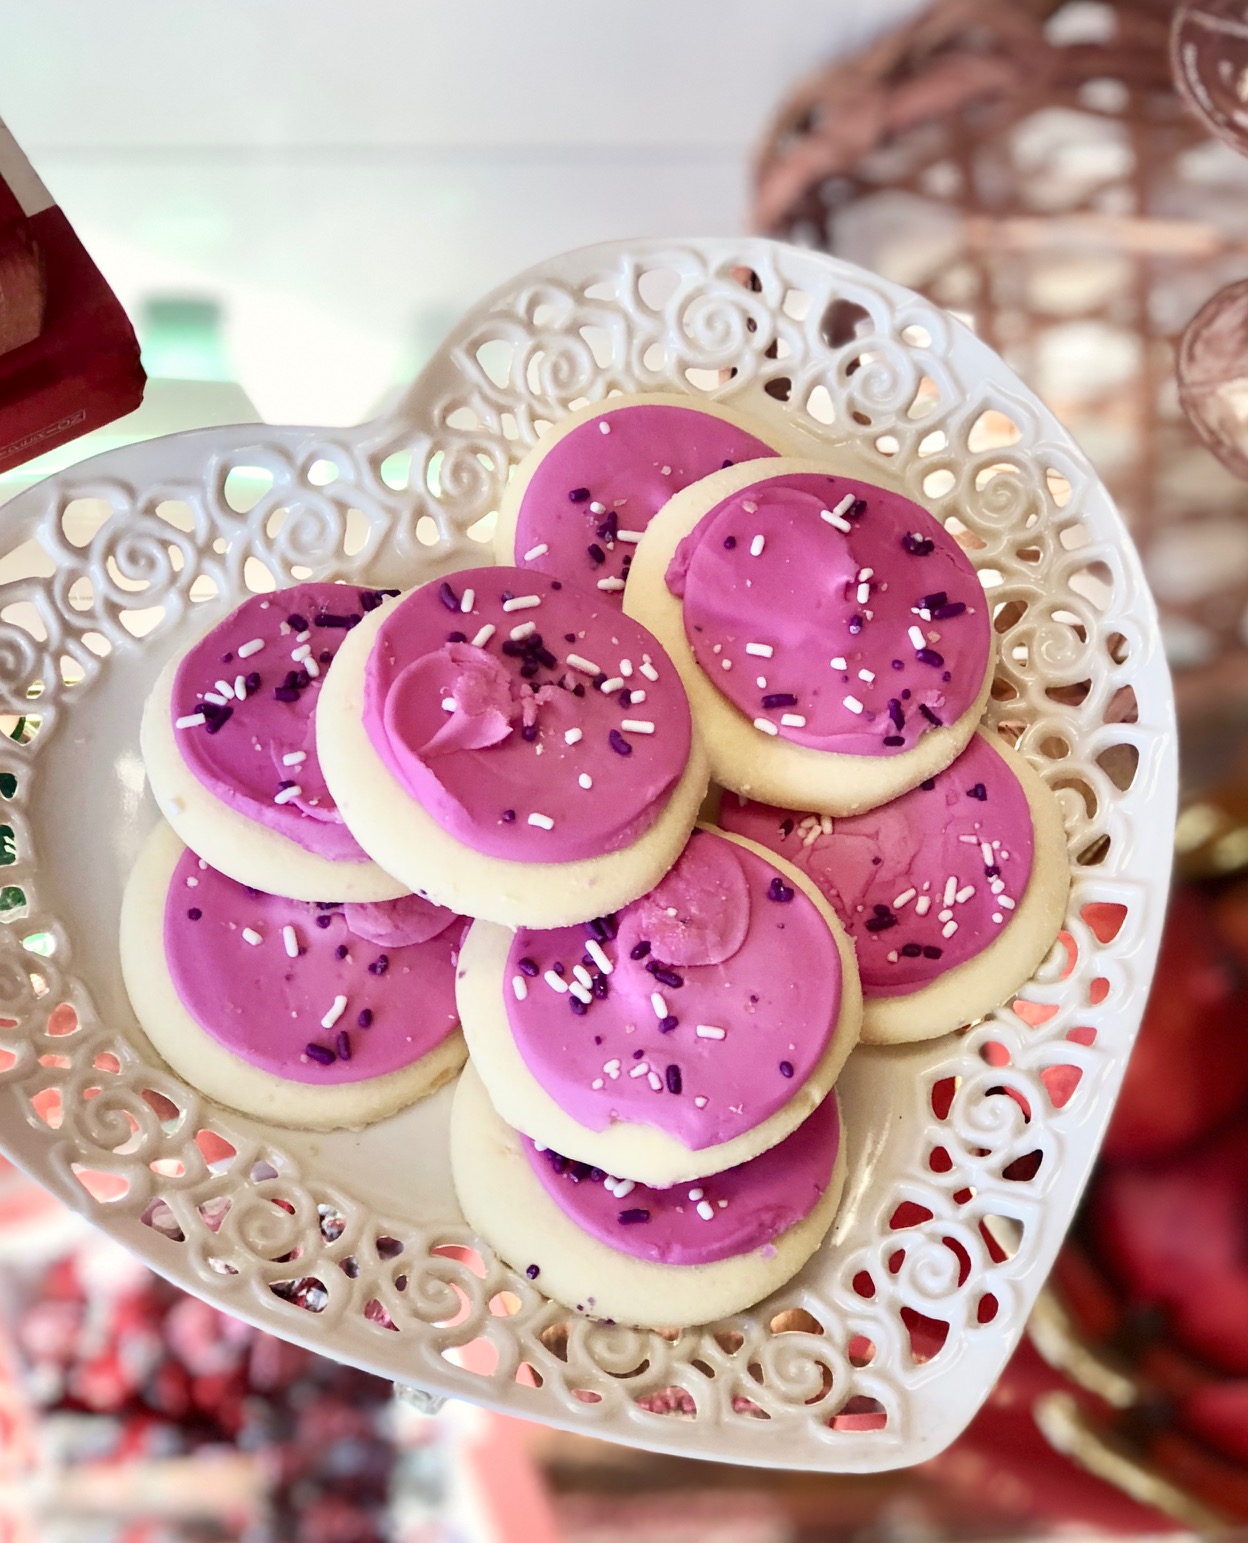 Sugar cookies on a delicate heart-shaped dish are a delicious finishing touch.